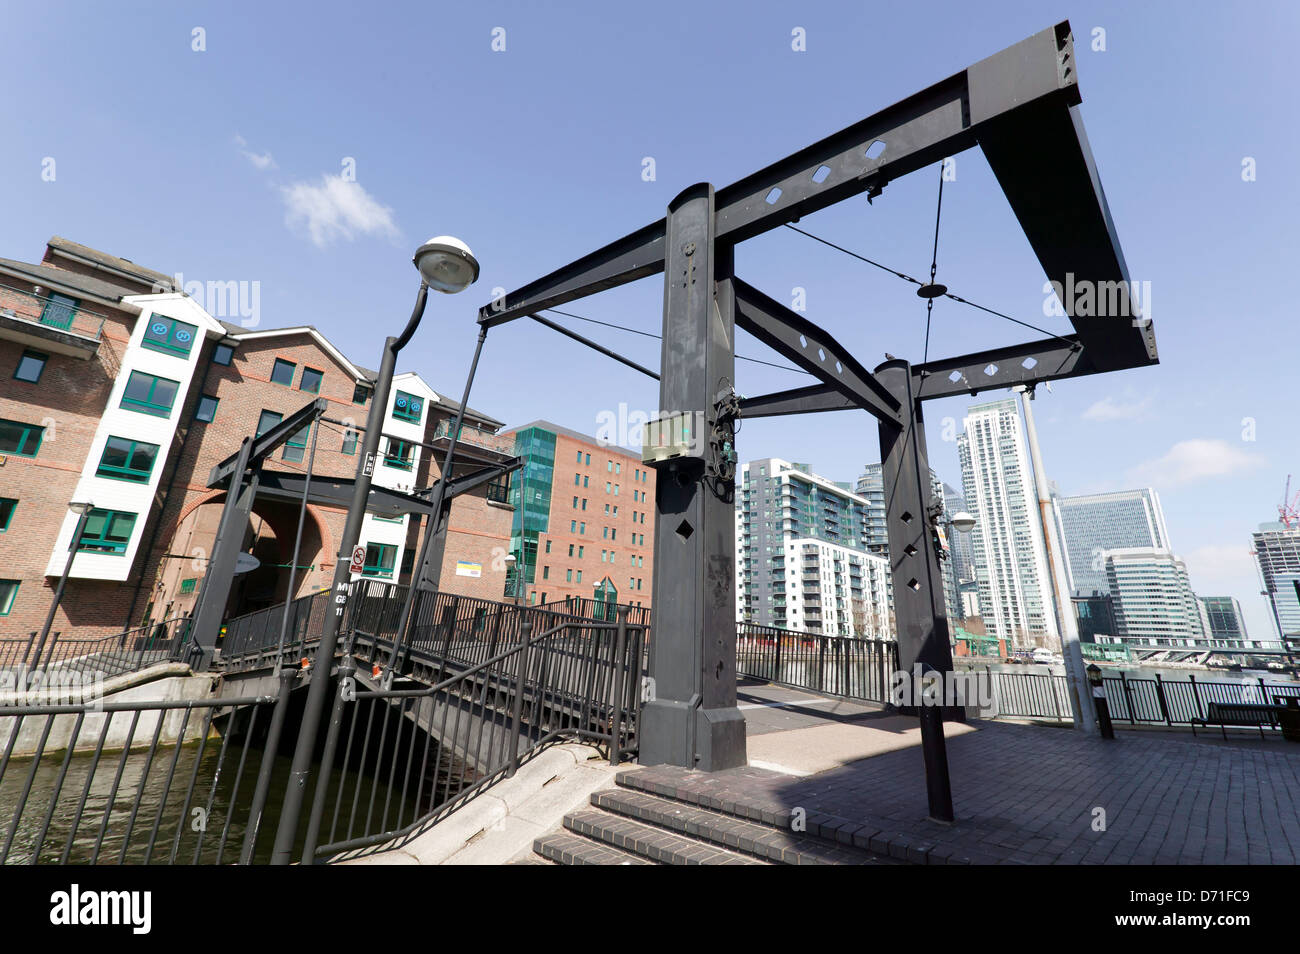 The Glengall Bridge, at Millwall Dock on the Isle of Dogs, London - Stock Image